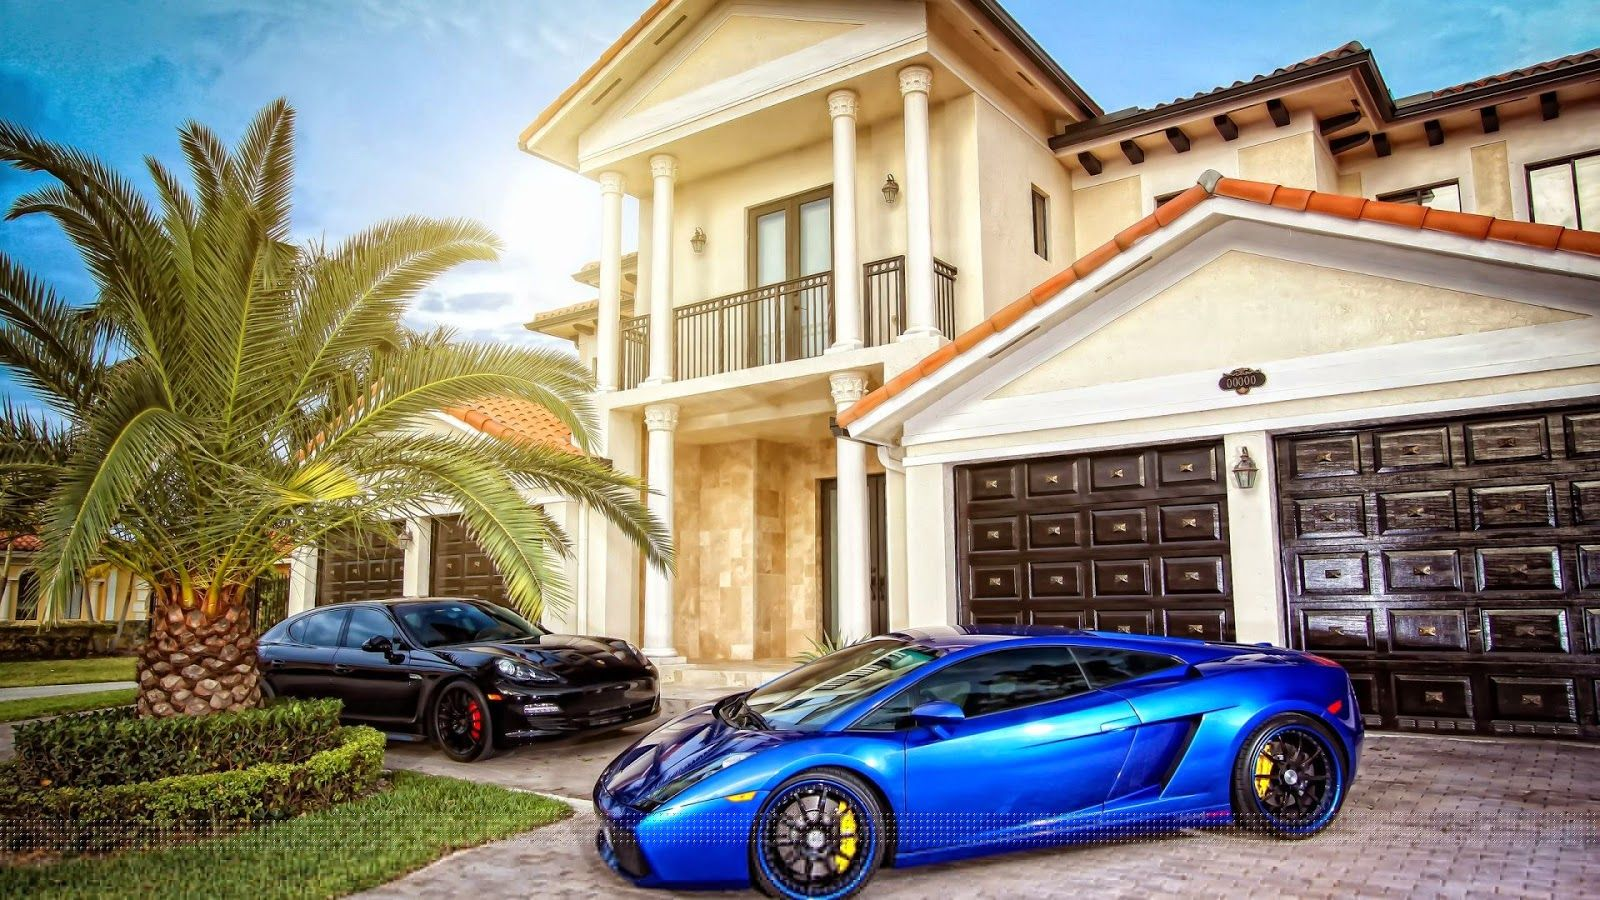 Exotic Mansions And Cars Wallpapers Top Free Exotic